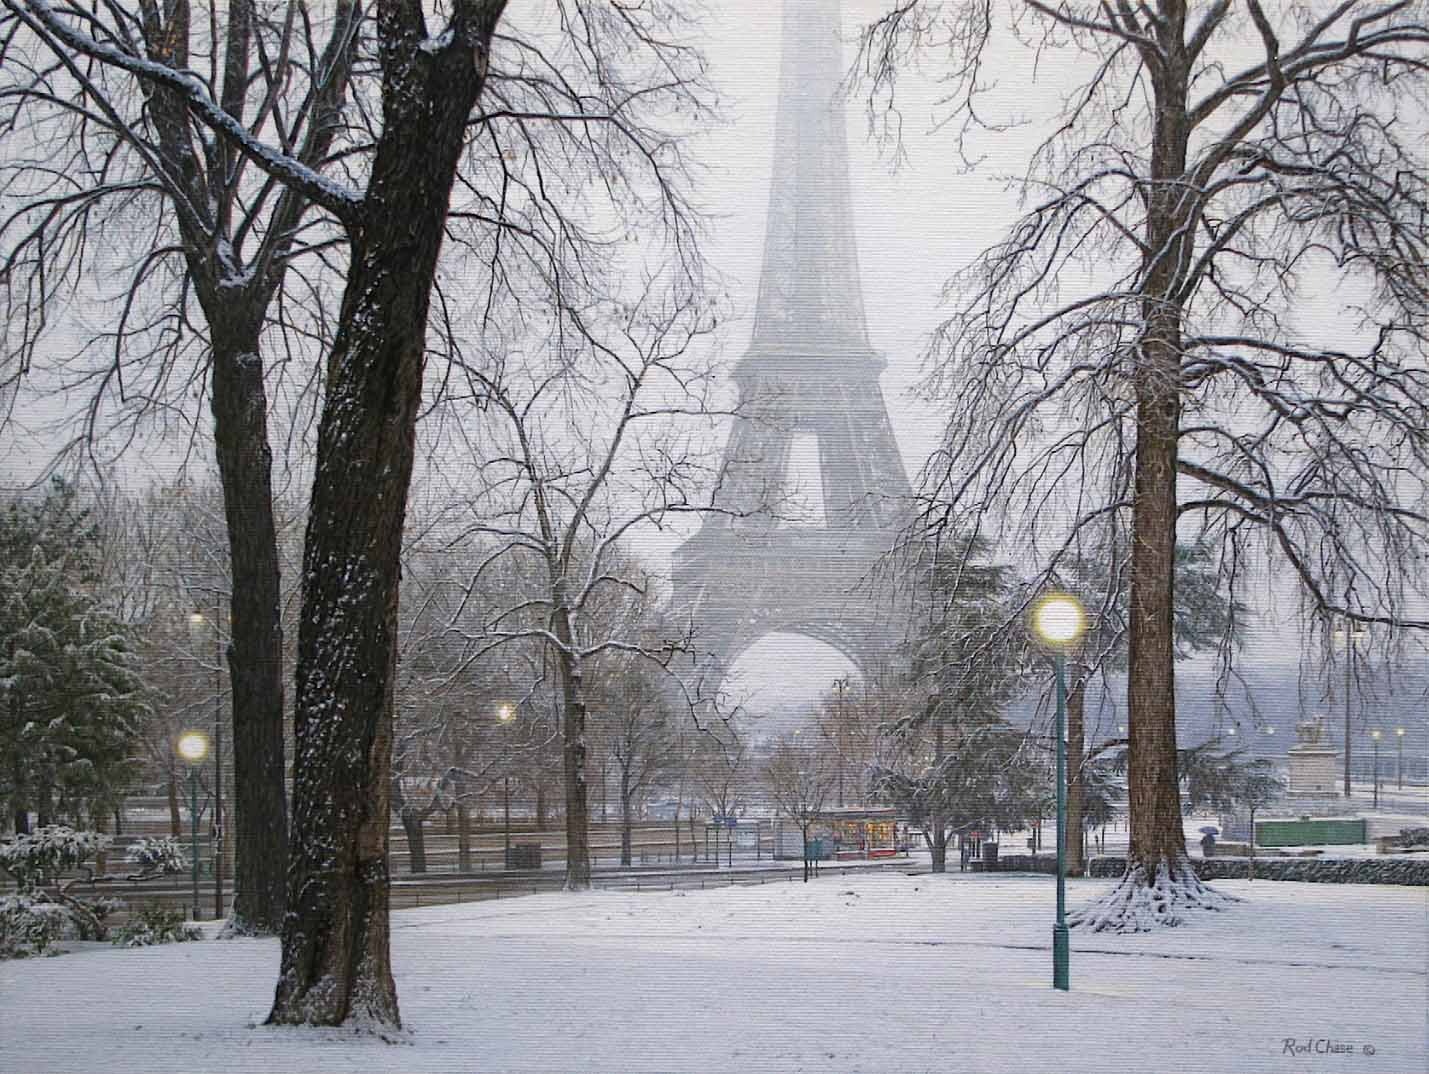 A_Foggy_Day_in_Paris.jpg